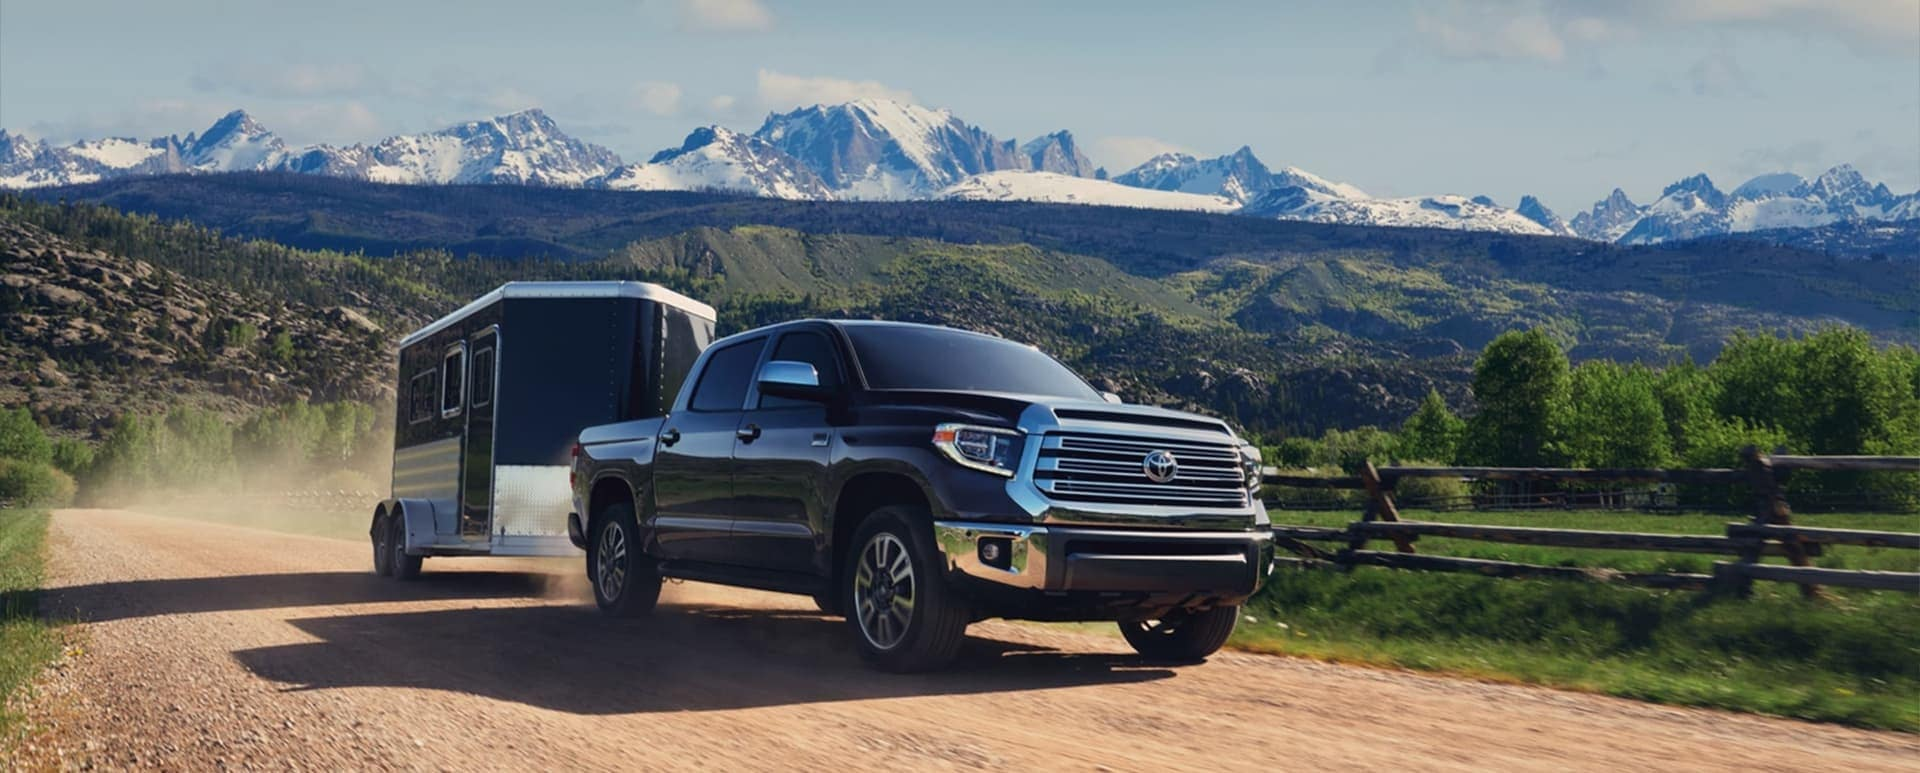 Black Toyota pickup truck hauling a trailer with hills and mountains in the background